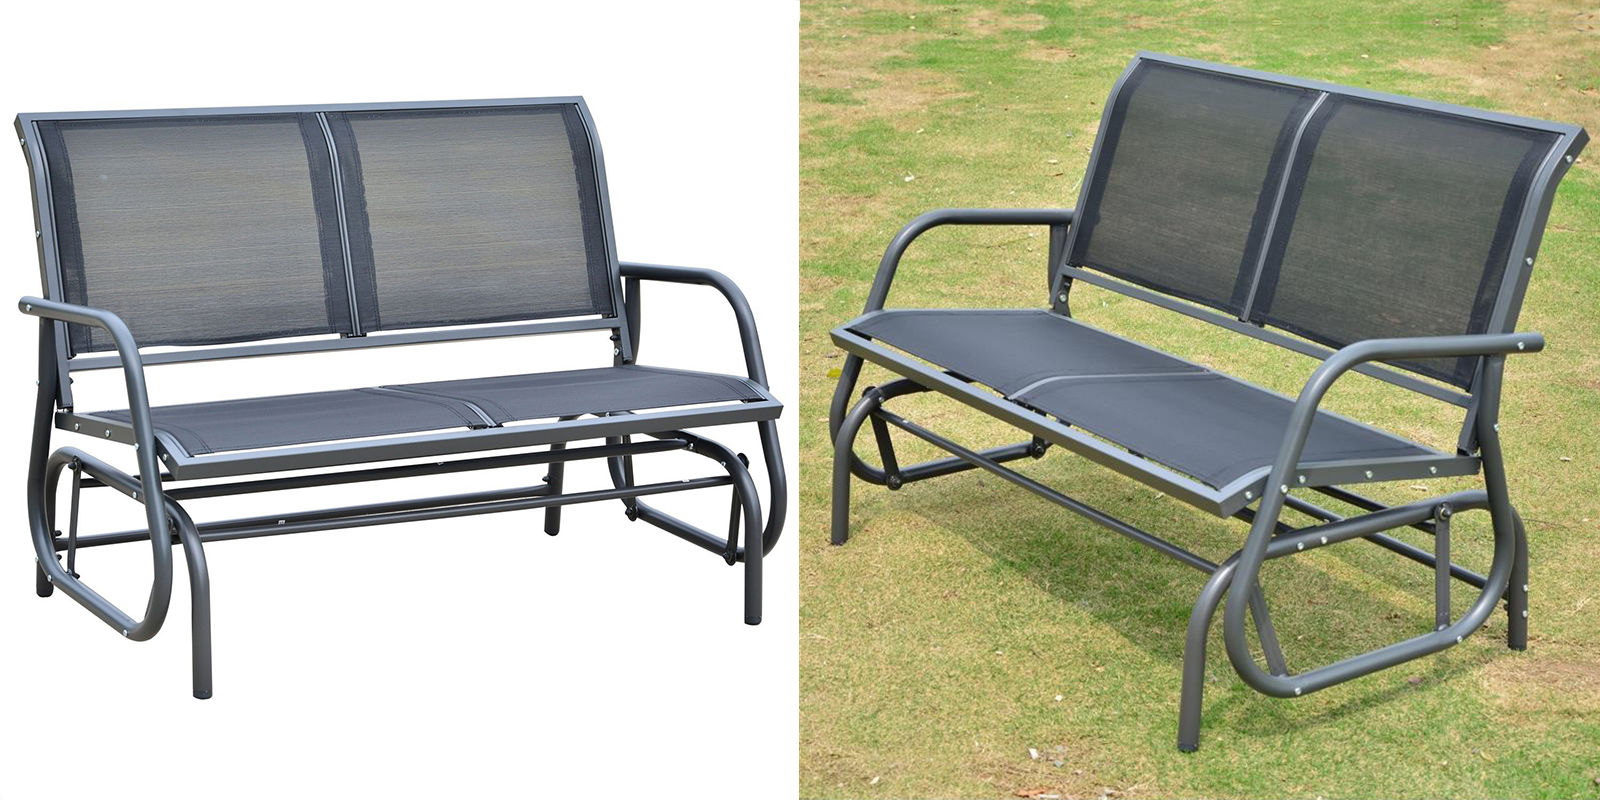 Patio Chair - Outdoor Patio Glider Bench Swing